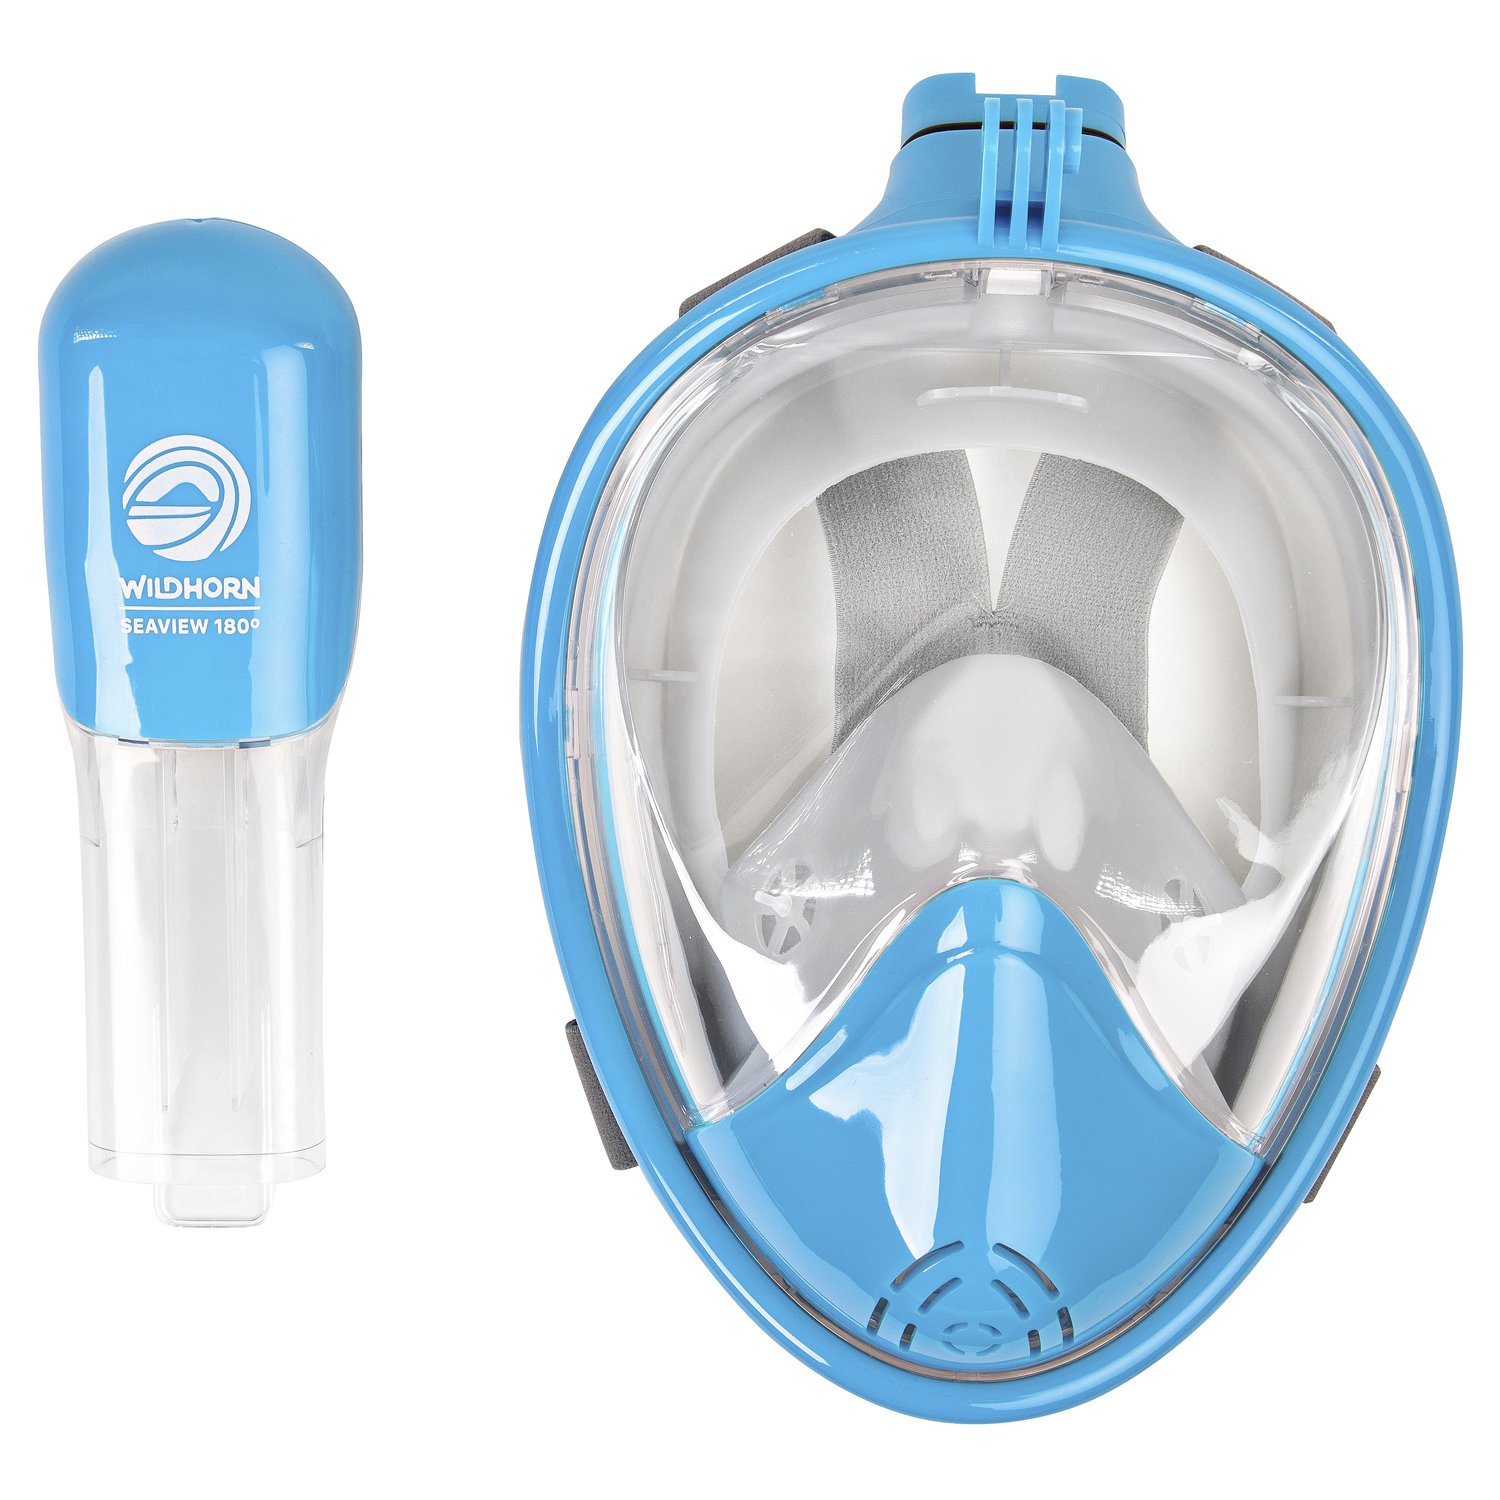 Prevents Gag Reflex with Tubeless Design Panoramic Full Face Design WildHorn Outfitters Seaview 180/° GoPro Compatible Snorkel Mask See More with Larger Viewing Area Than Traditional Masks